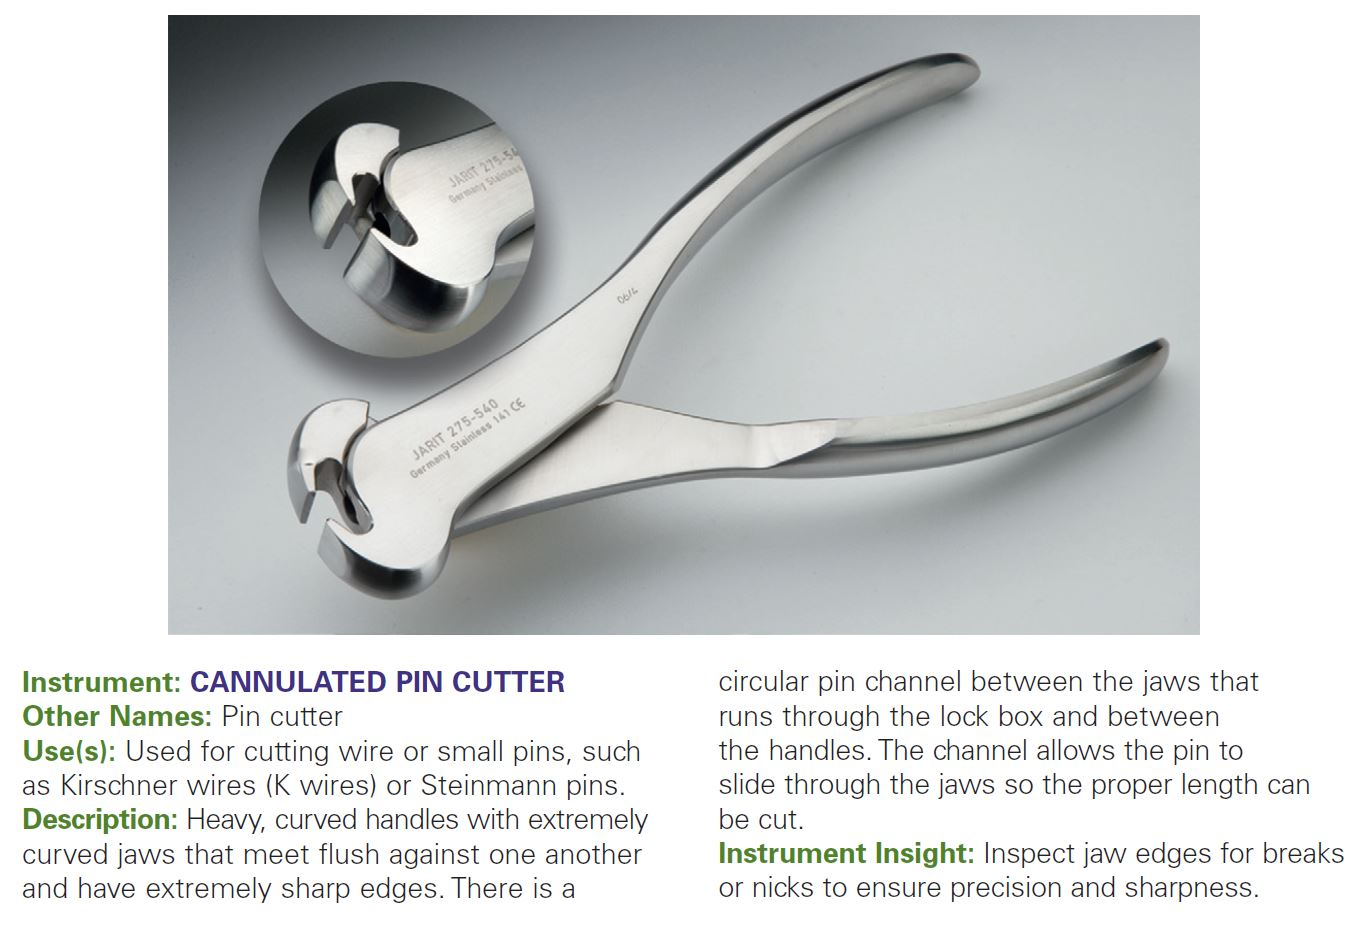 CANNULATED PIN CUTTER